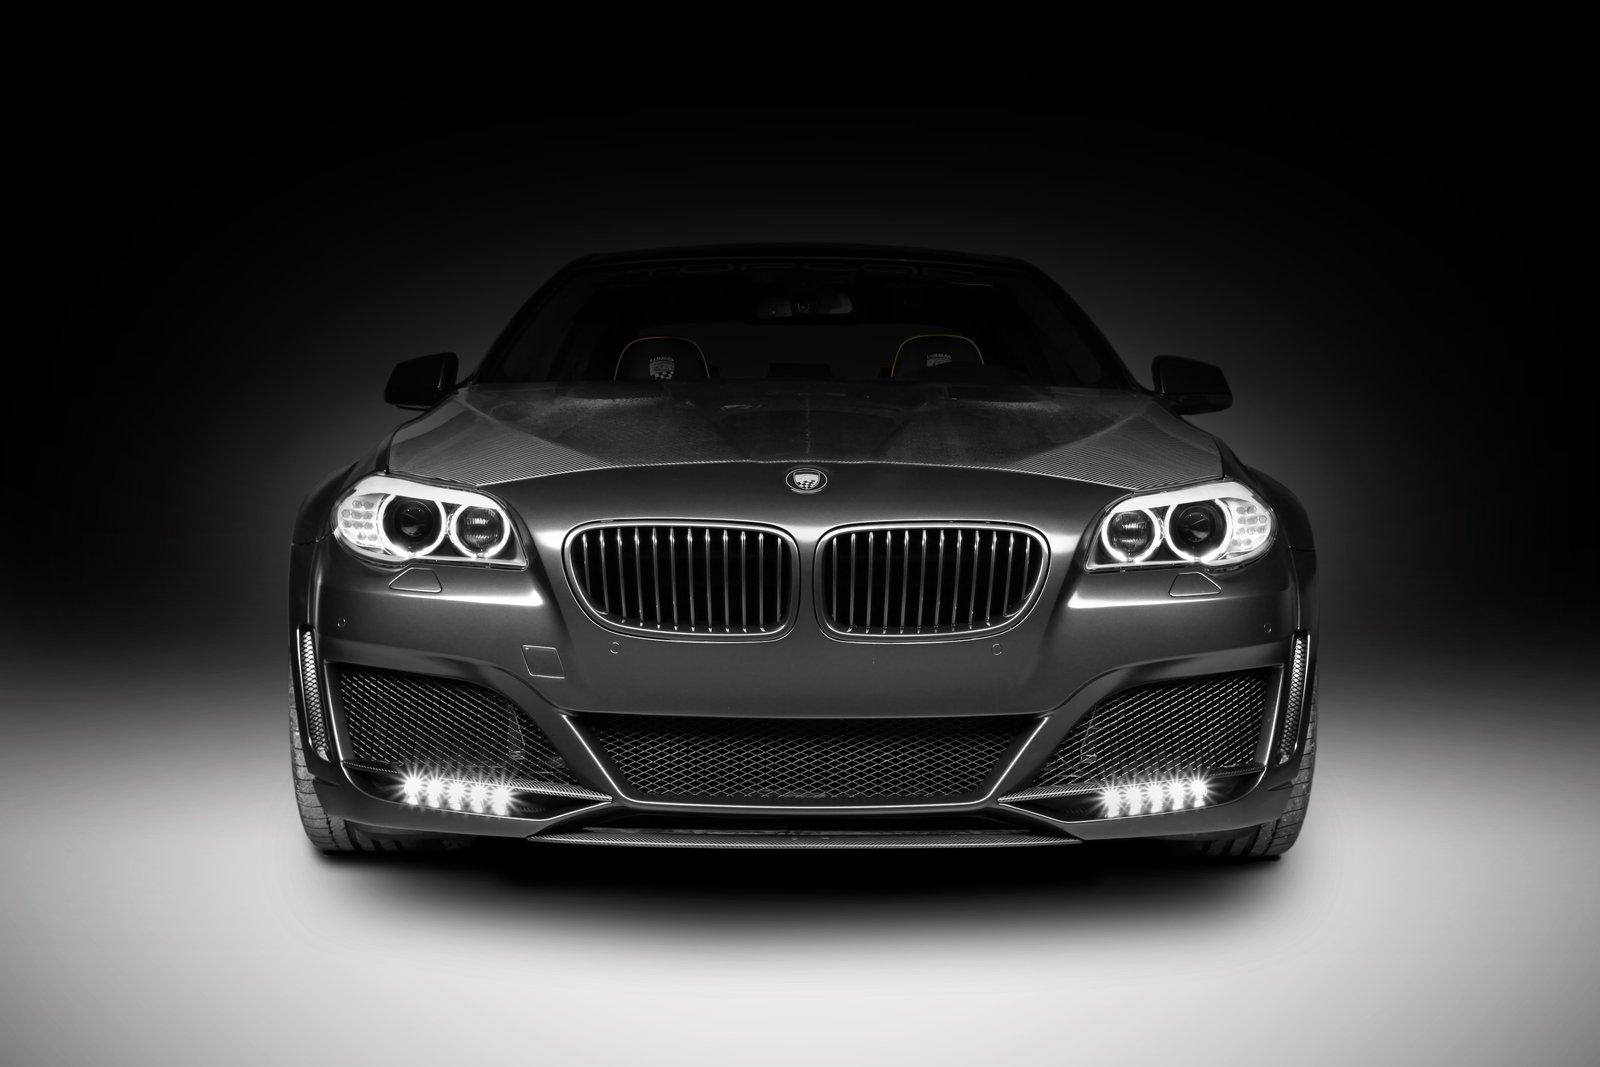 Lumma Clr 500 Rs2 More Carbon Fibre For Bmw F10